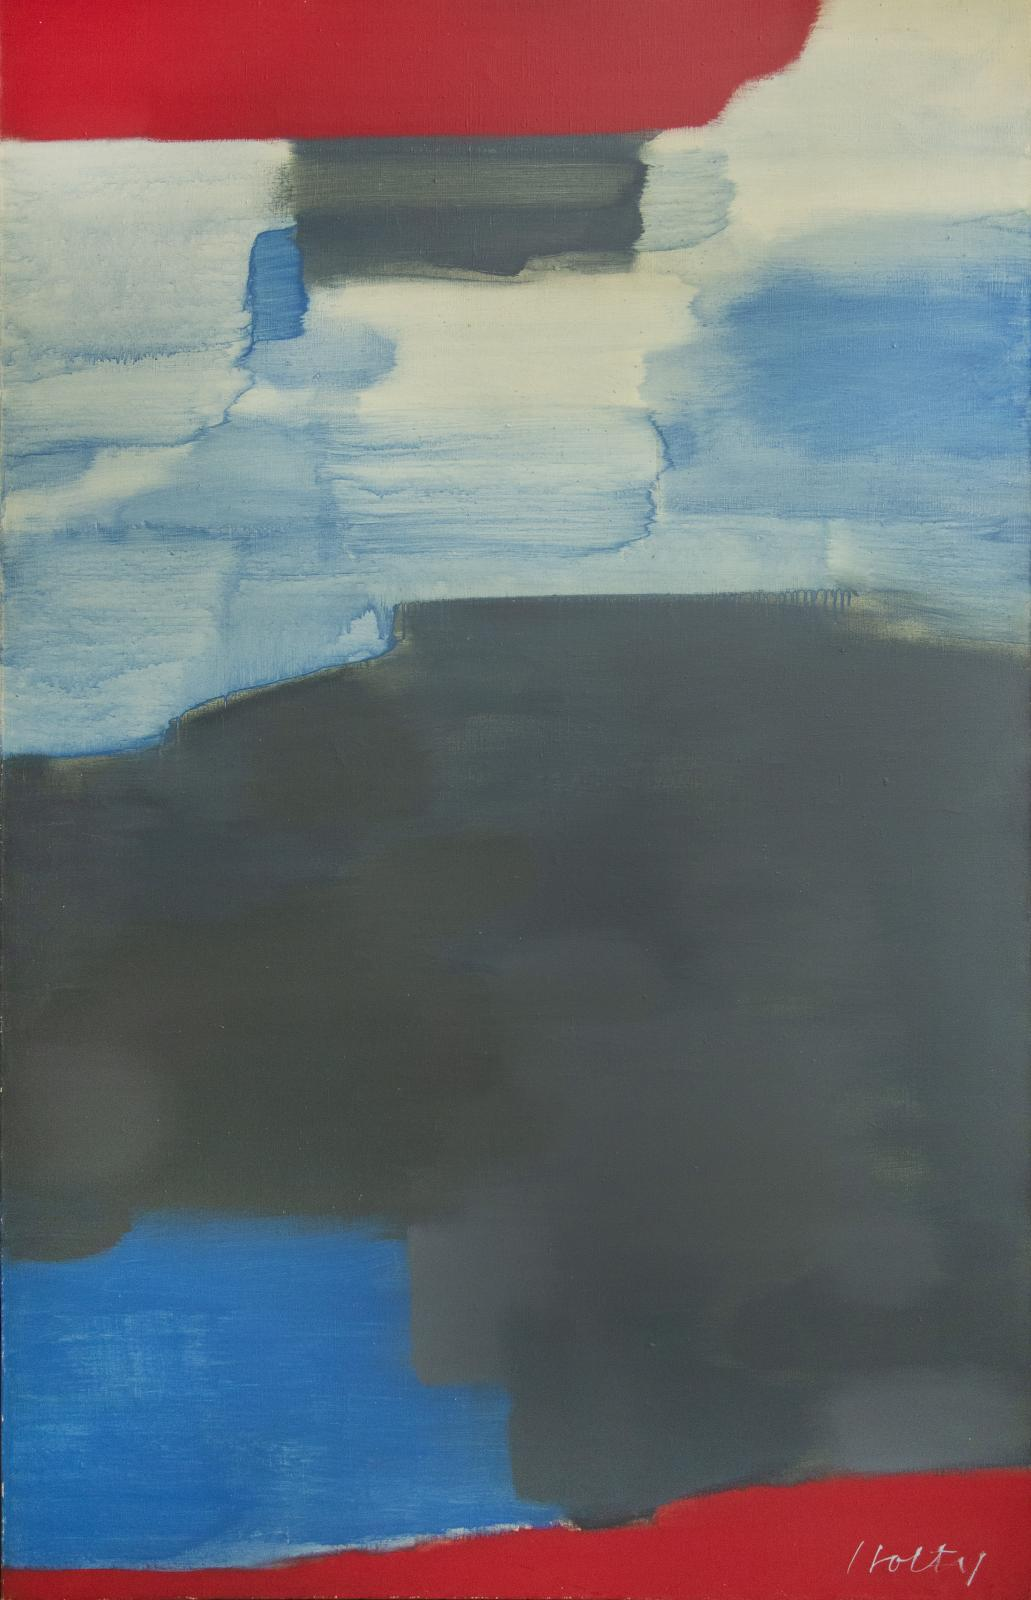 Untitled (Gray, Blue, and Red)